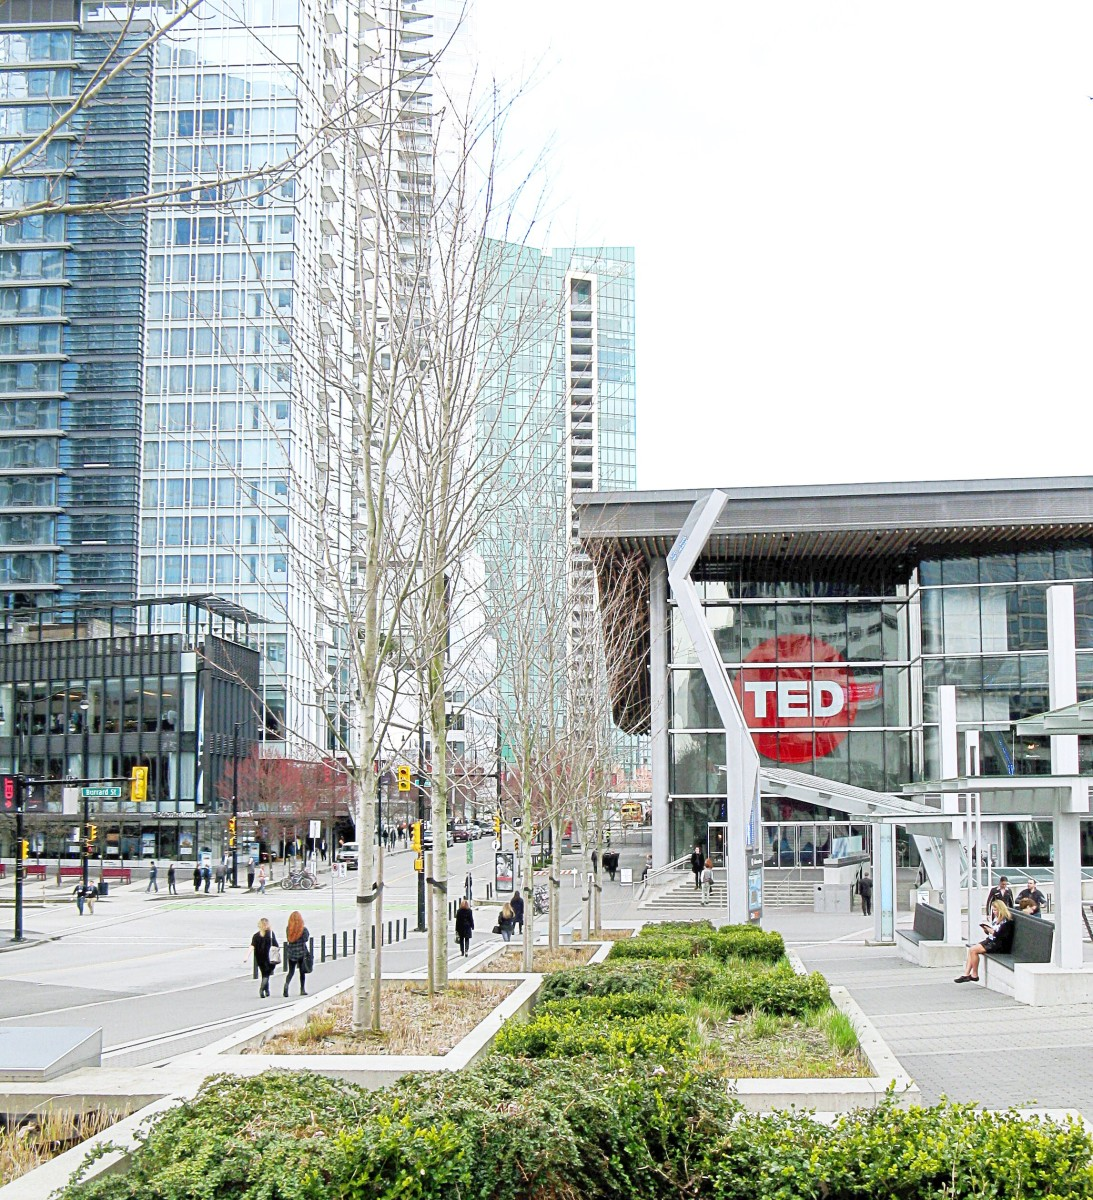 The Vancouver Convention Centre is located at Canada Place, which is located next to Burrard Inlet and a pier with a promenade.